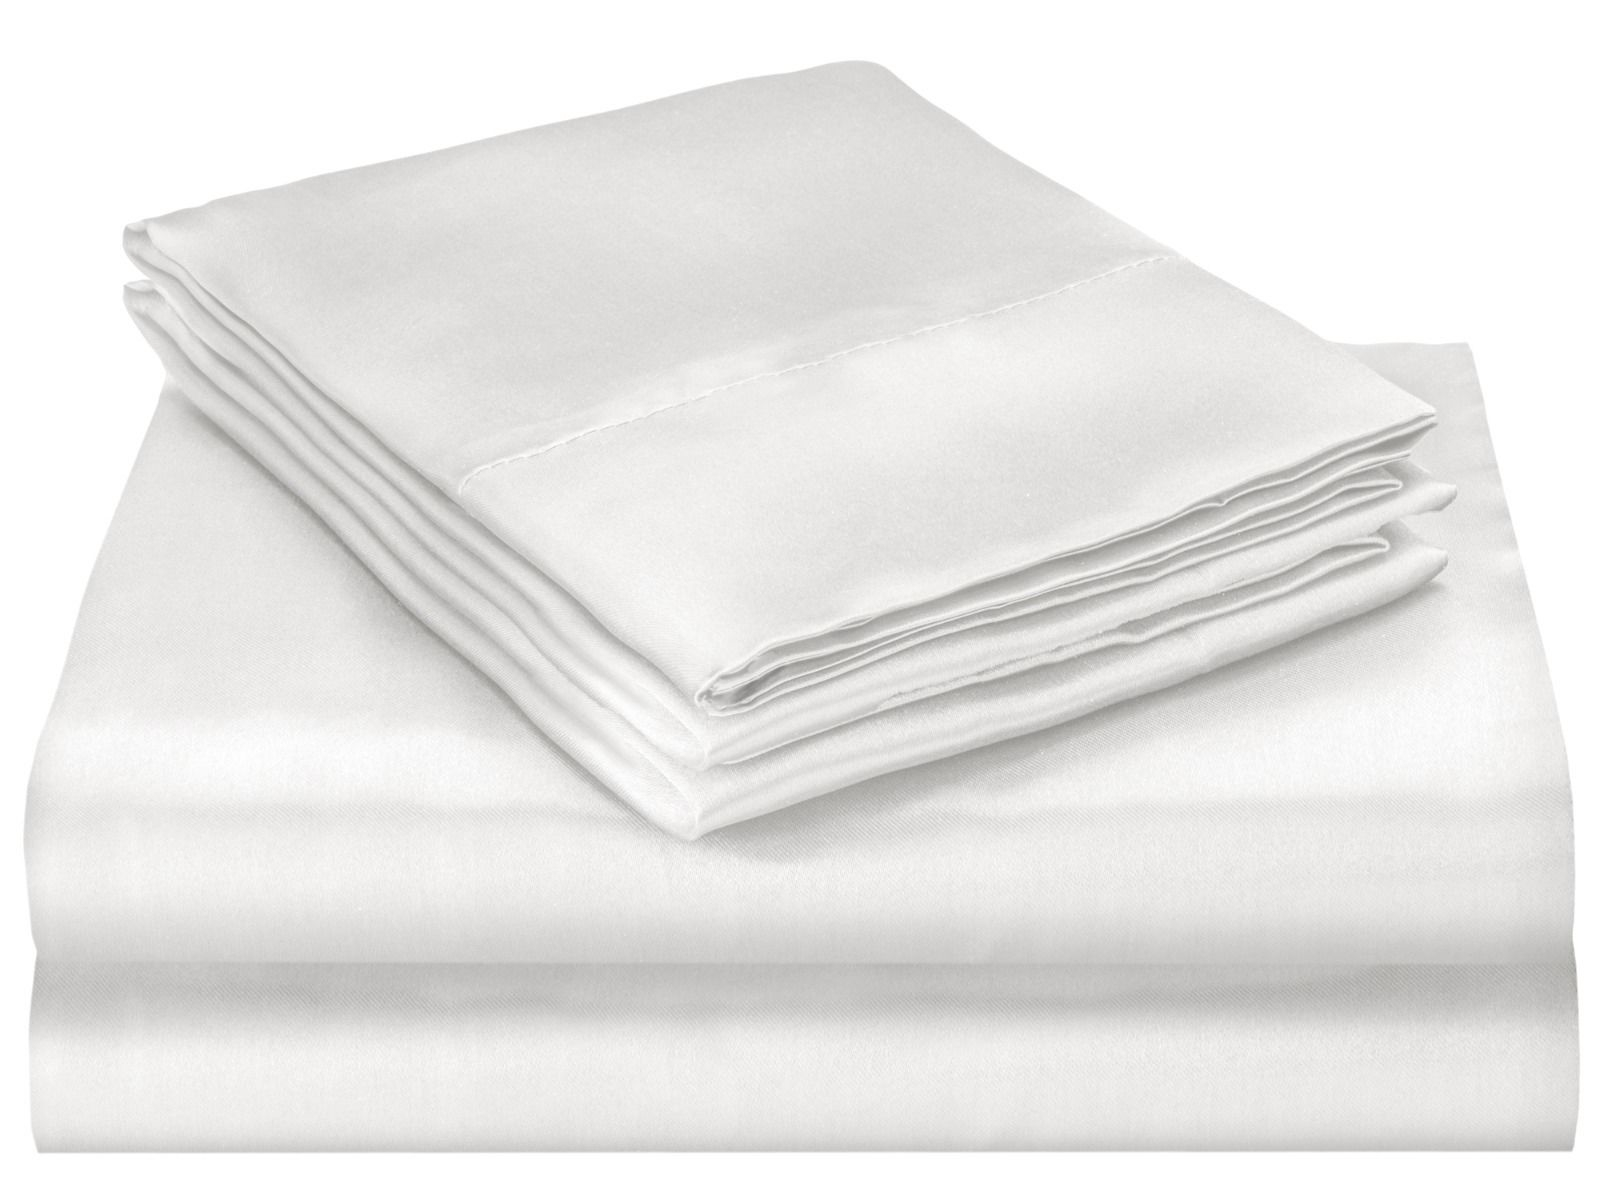 Queen Size Satin Bed Sheet Set - White